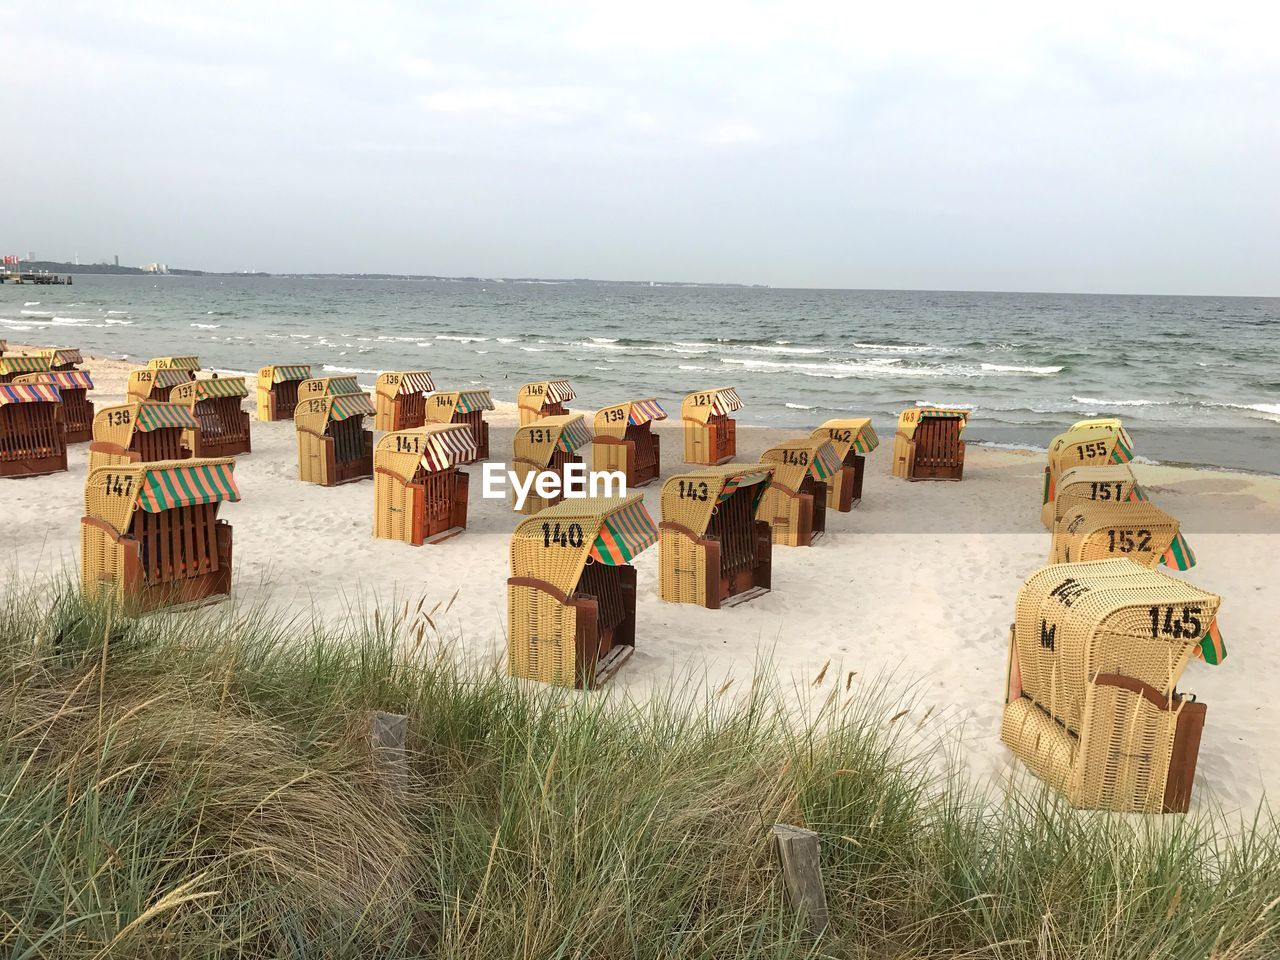 sea, land, sky, horizon, water, horizon over water, beach, scenics - nature, beauty in nature, nature, hooded beach chair, grass, cloud - sky, day, no people, tranquility, tranquil scene, non-urban scene, plant, outdoors, wooden post